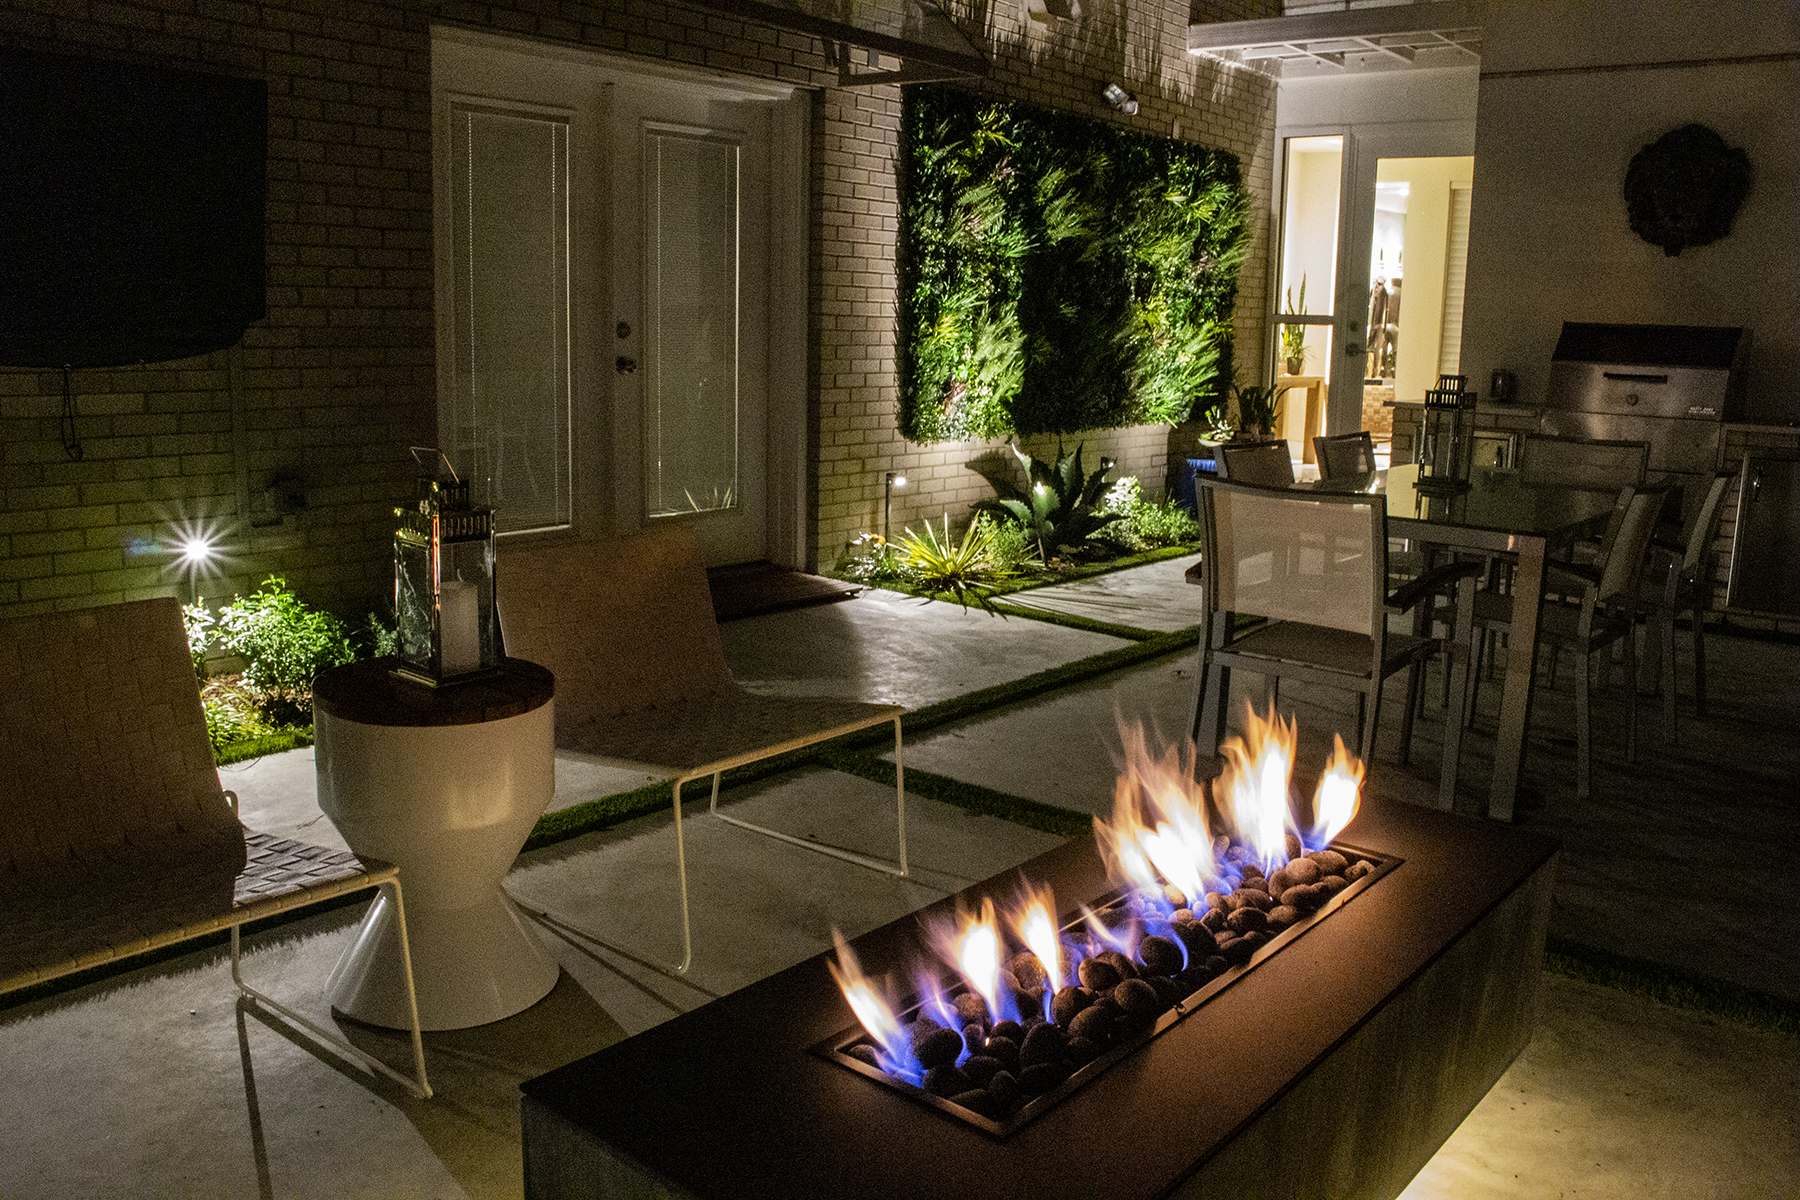 ddla-design-uptown-townhome-ourtdoor-living.jpg